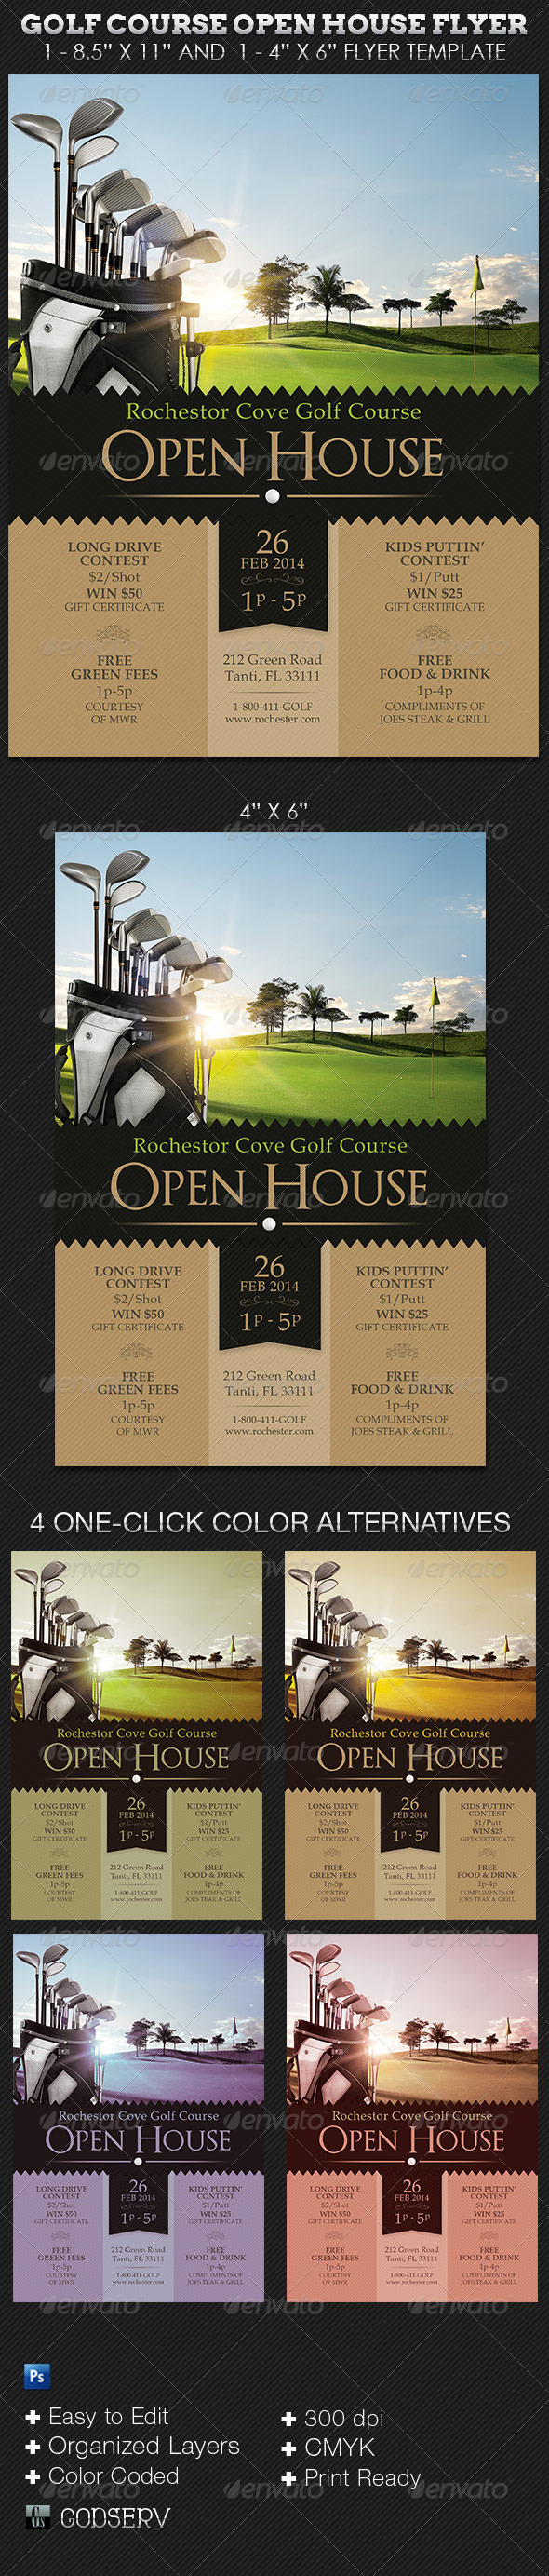 Golf Course Open House Flyer Templates